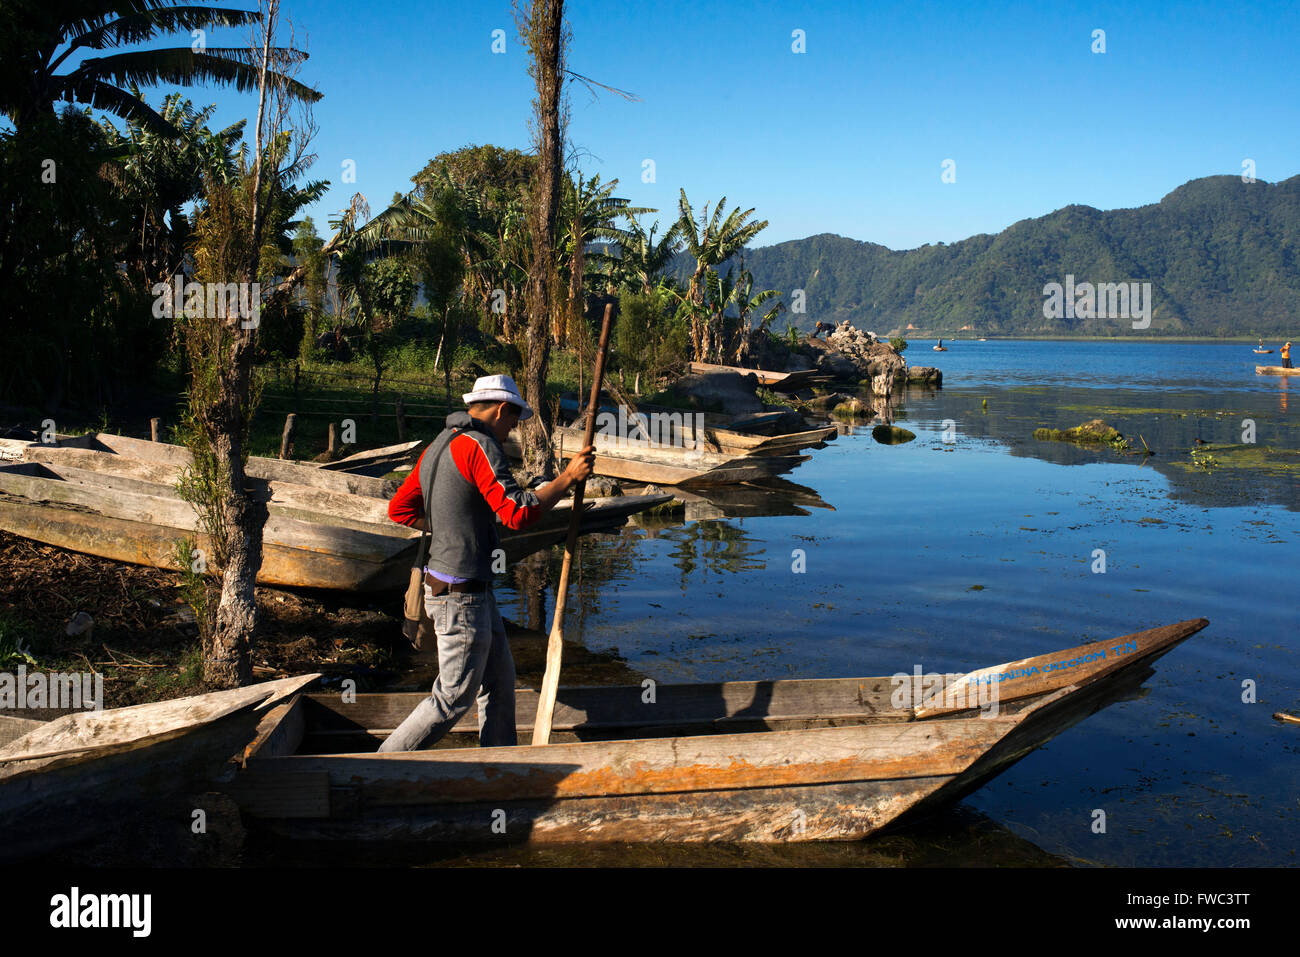 Men fishing in the traditional manner in Lake Atitlan the largest lake of Guatemala - Stock Image